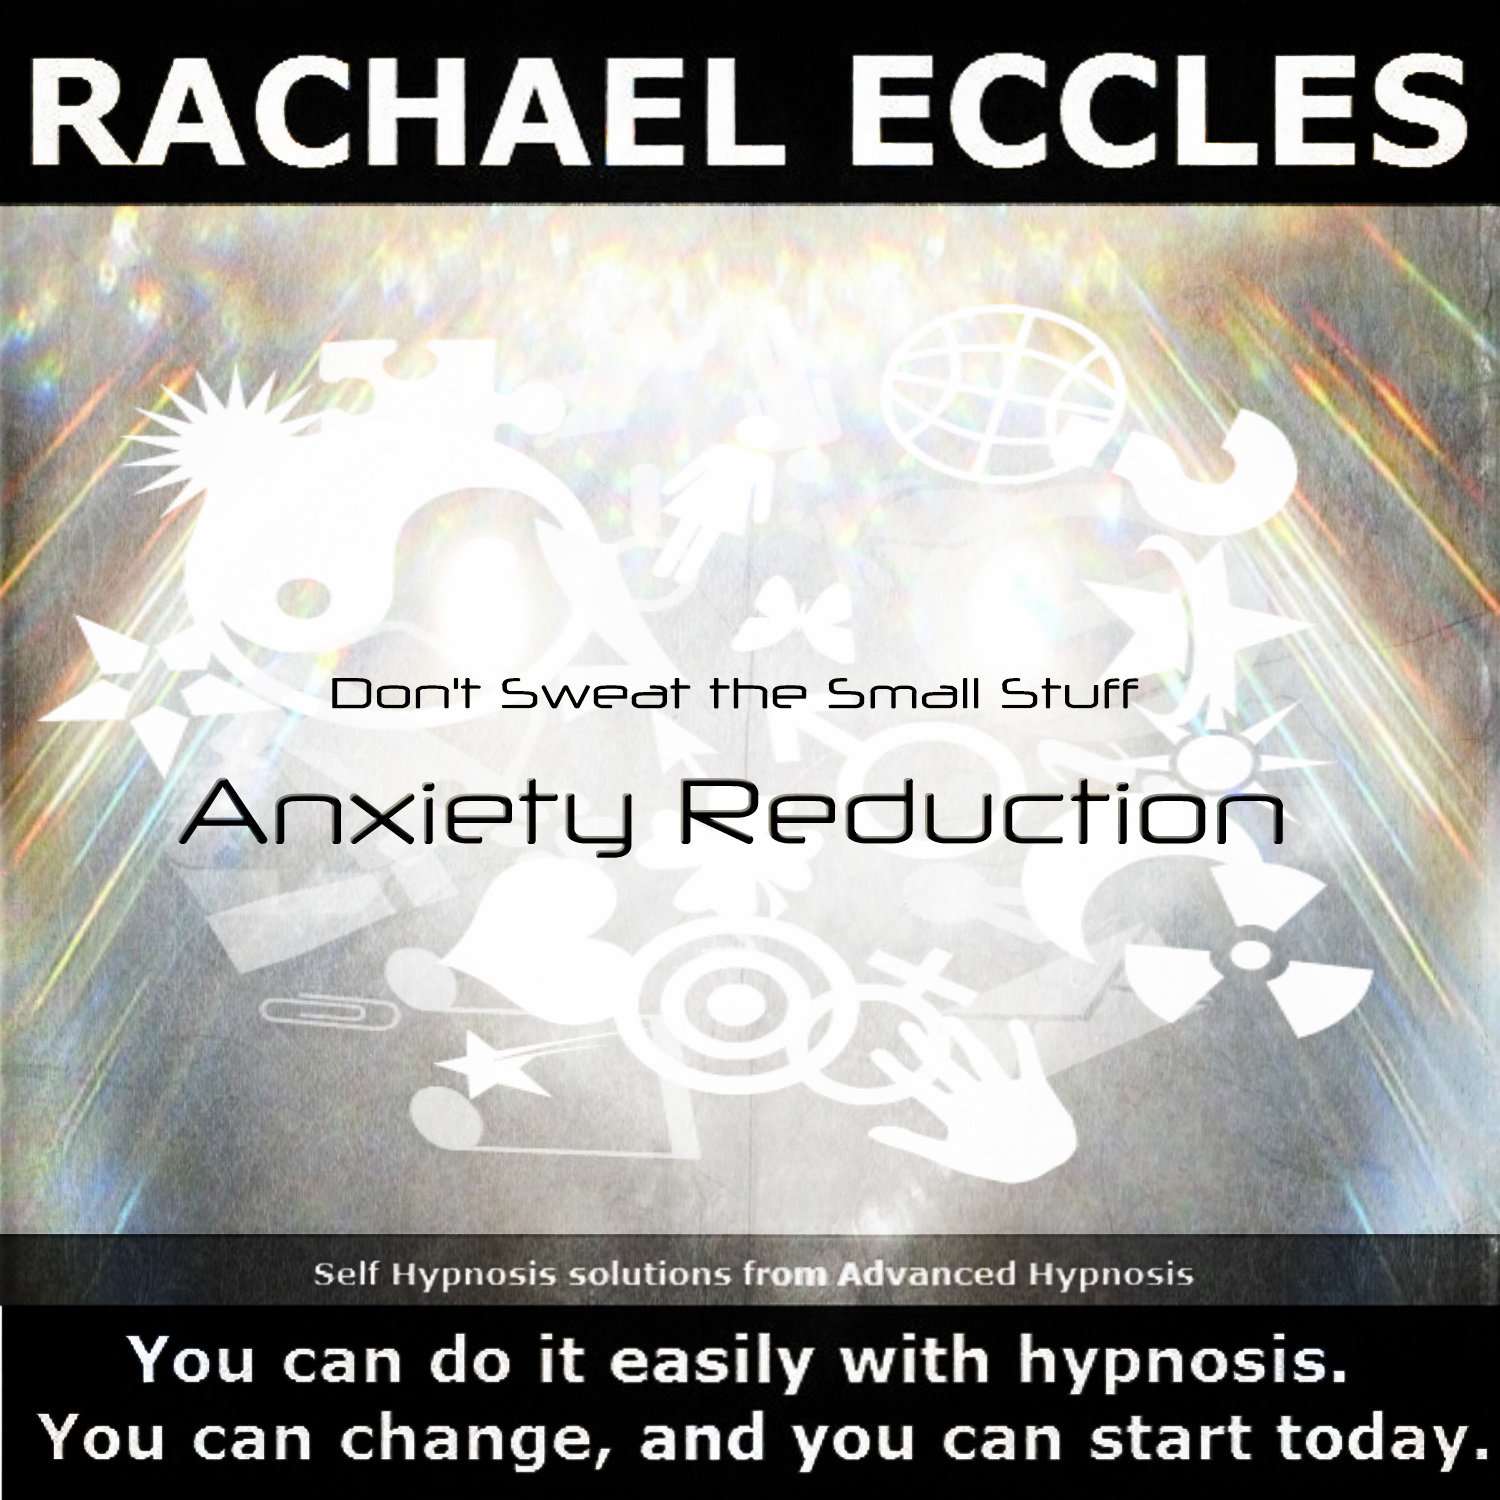 Don't Sweat The Small Stuff, Stop worrying, Self Hypnosis Hypnotherapy 2 track MP3 download